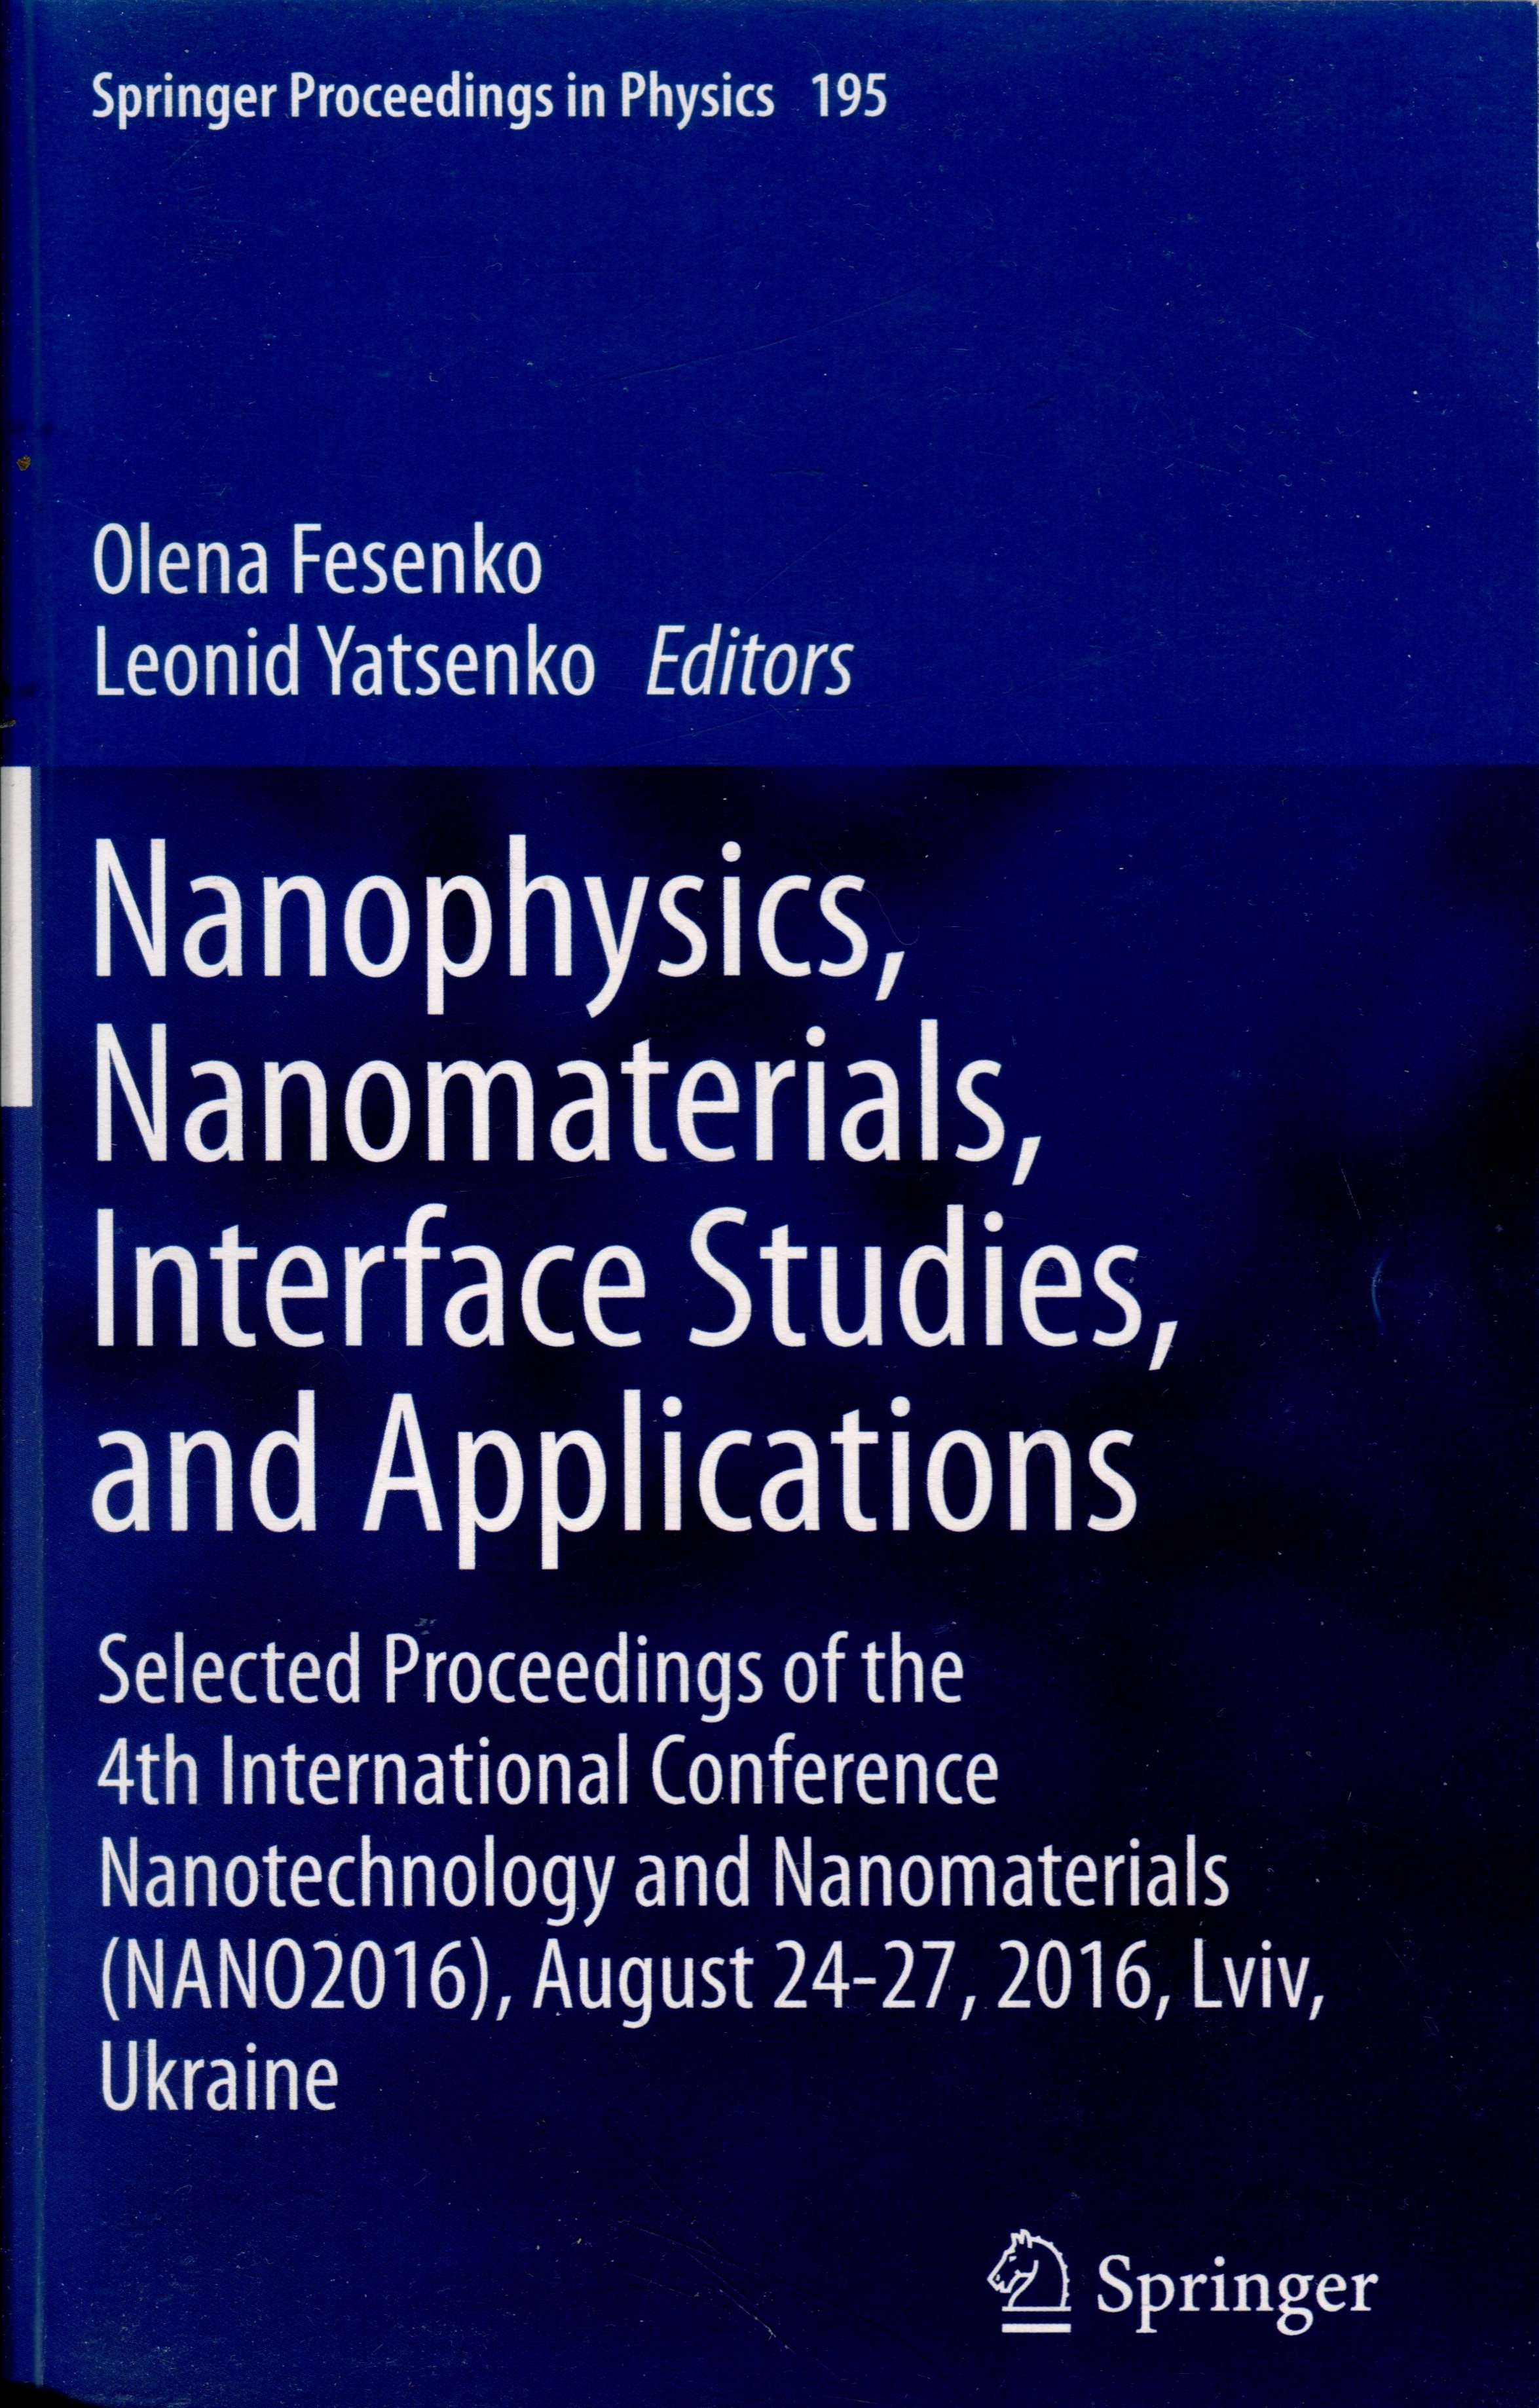 Nanophysics, Nanomaterials, Interface Studies, and Applications